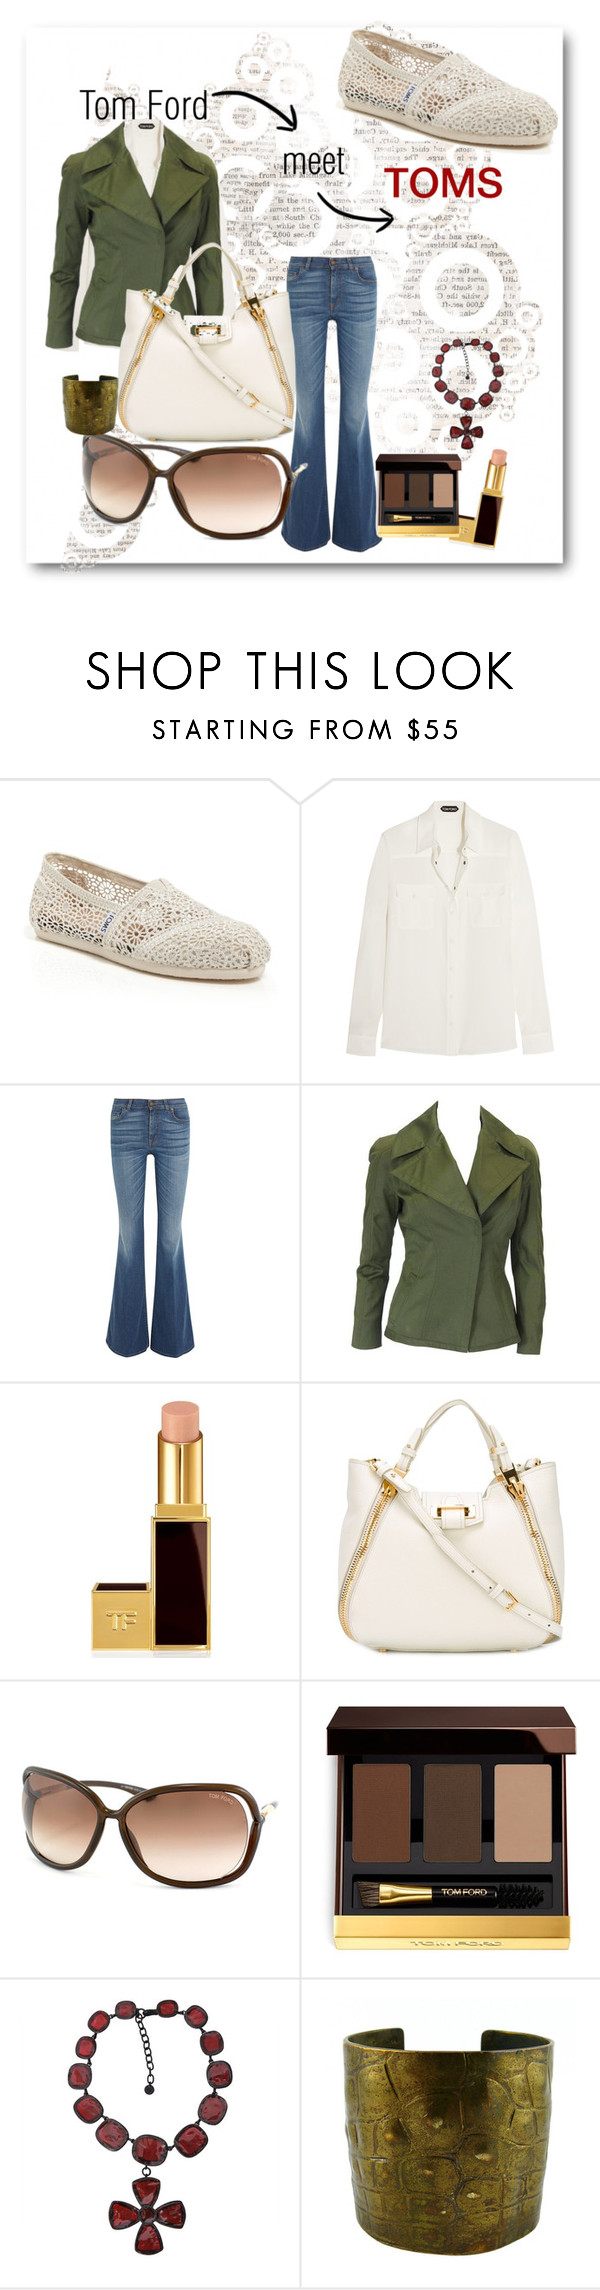 """""""Tom & Toms"""" by shaunnhicks ❤ liked on Polyvore featuring TOMS and Tom Ford"""